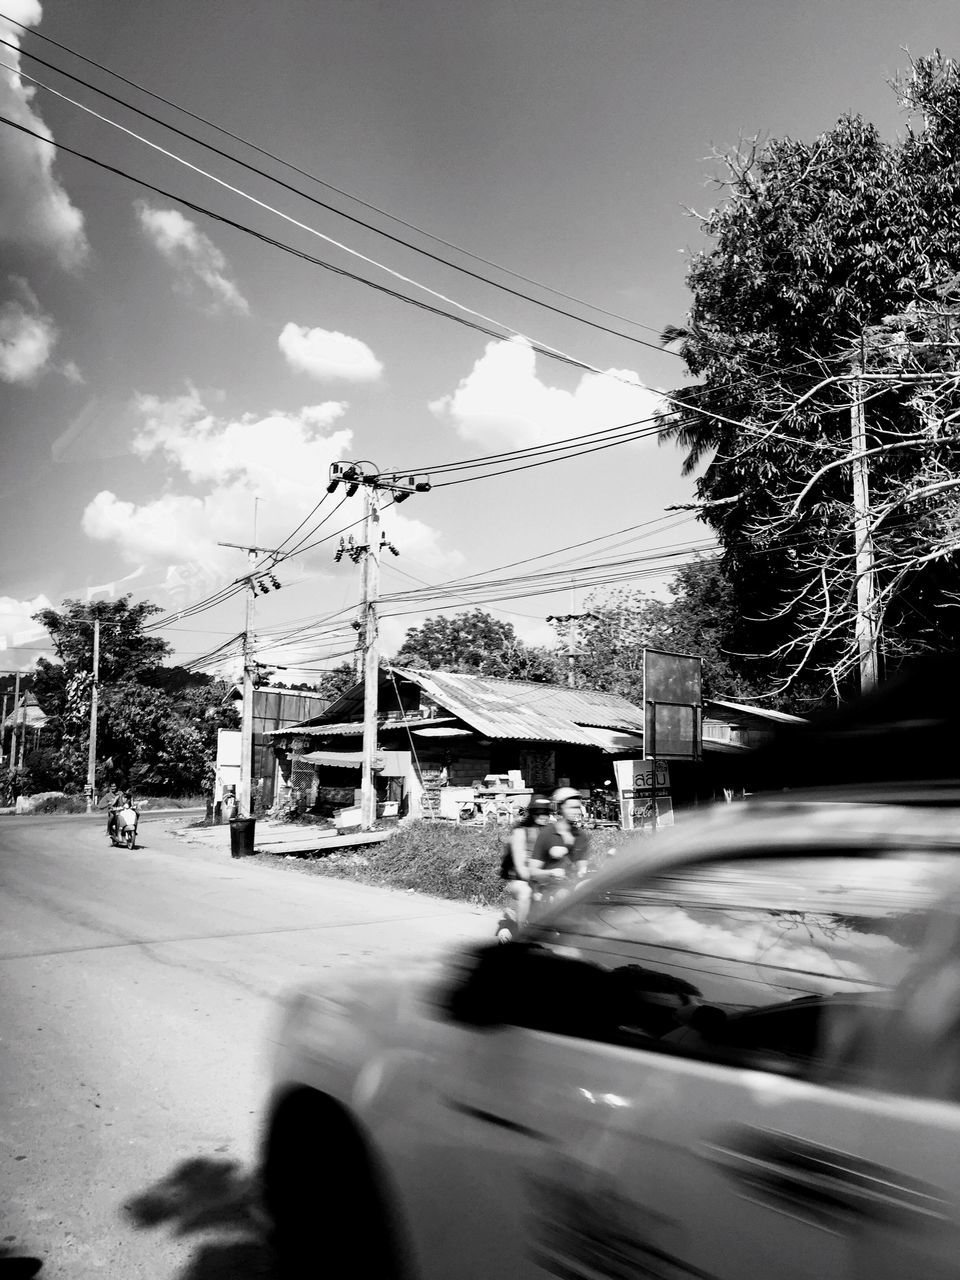 car, transportation, cable, tree, sky, mode of transport, land vehicle, road, power line, day, cloud - sky, outdoors, electricity pylon, electricity, built structure, architecture, telephone line, city, building exterior, nature, no people